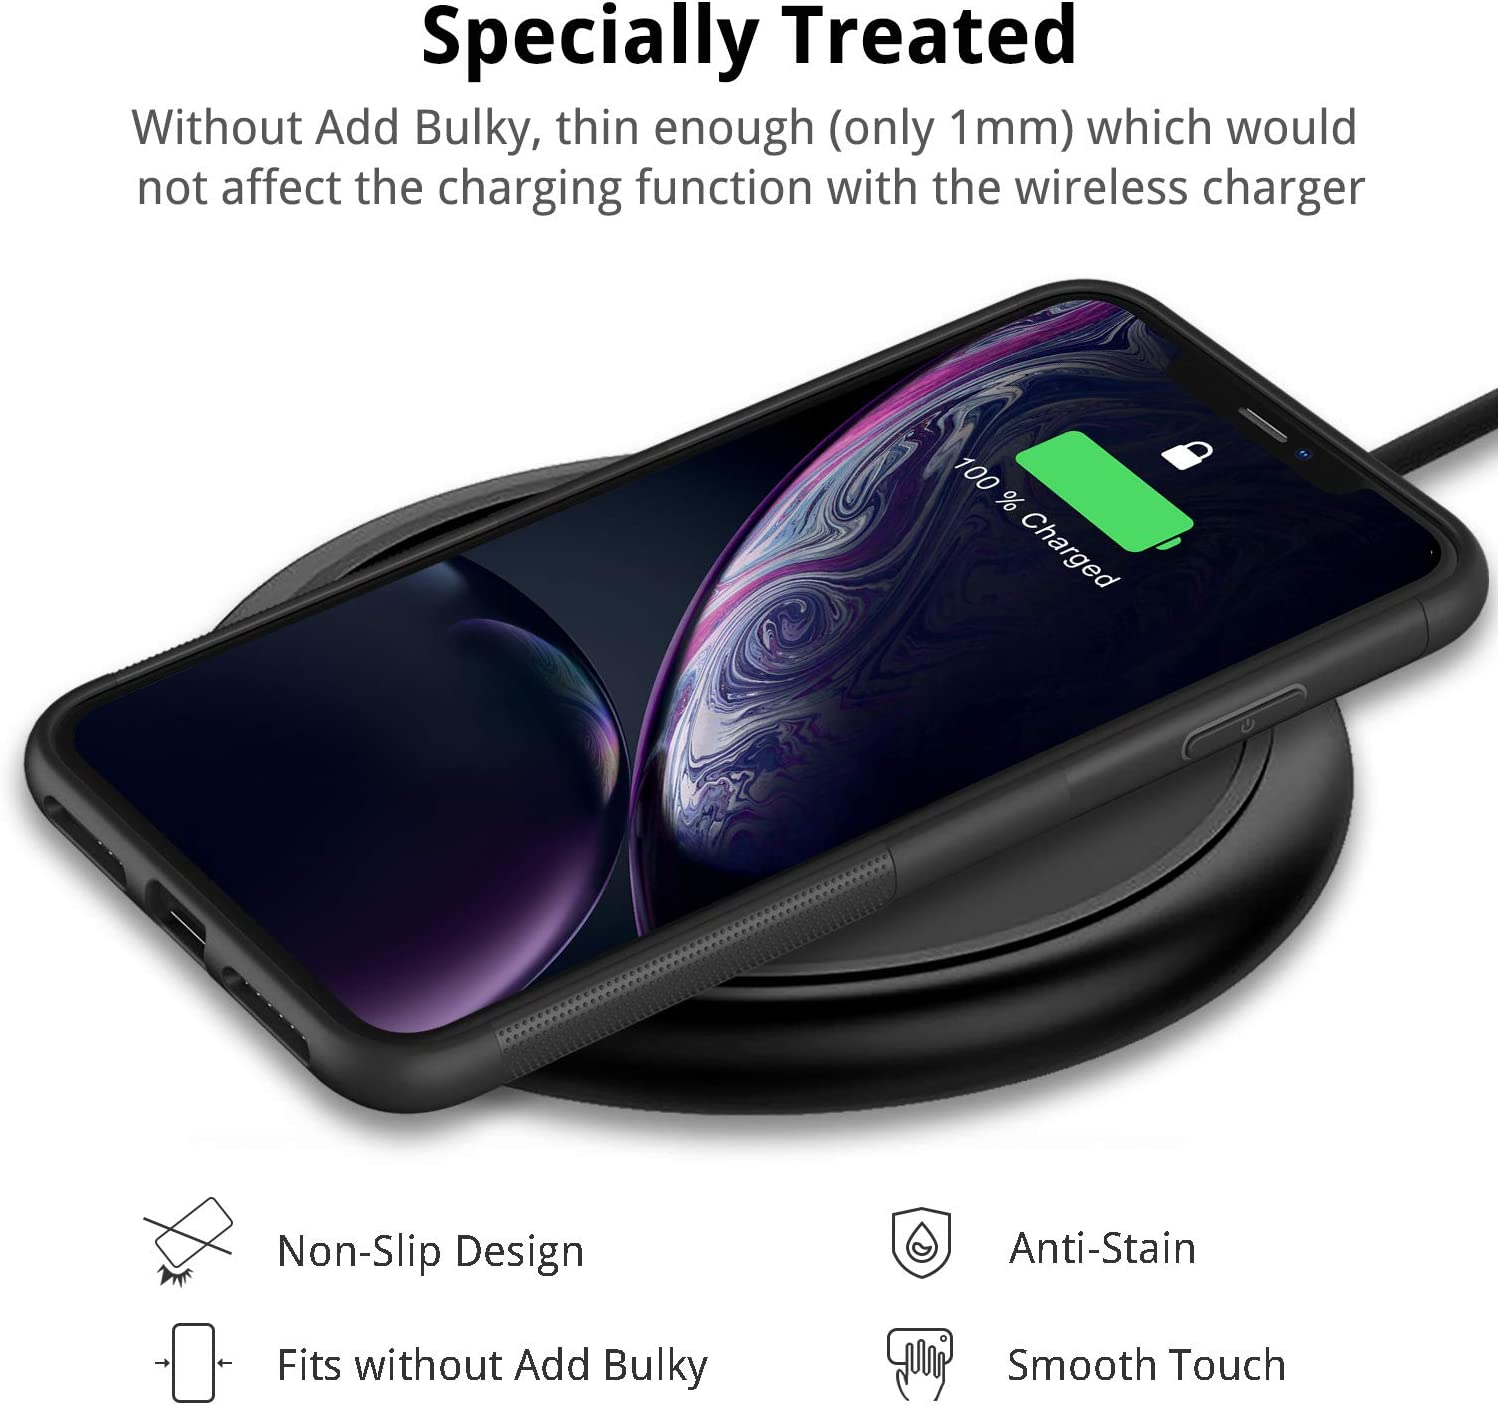 UNBREAKcable iPhone XR Case - Matt Black Soft Matte TPU Ultra Thin Stylish Phone Case Cover for 6.1 iPhone XR Drop Protection